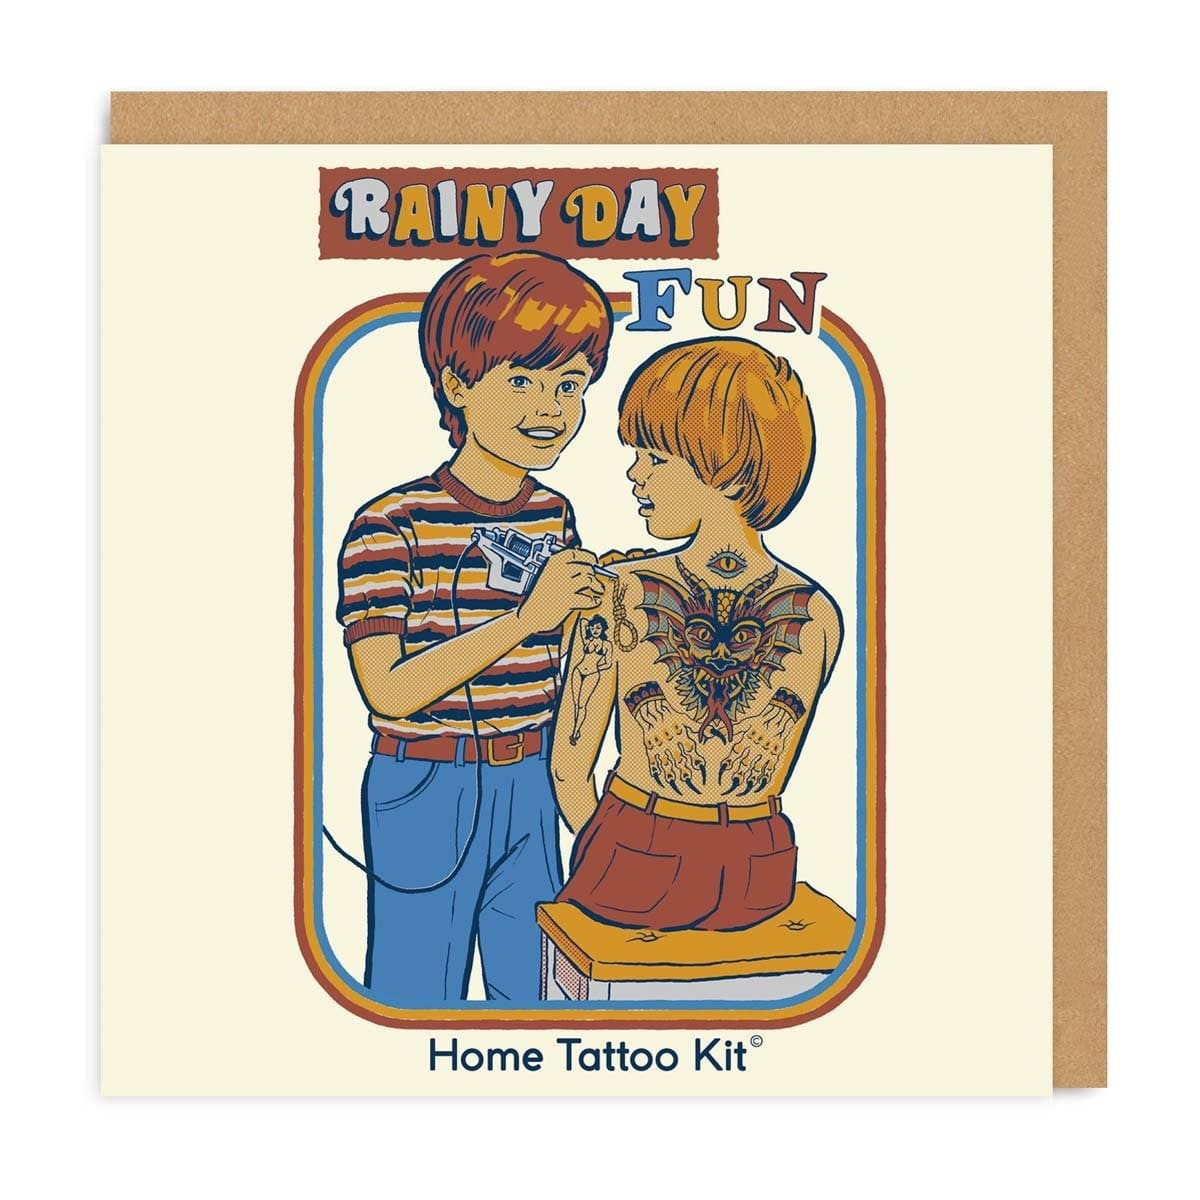 Rainy Day Fun: Home Tattoo Kit Greeting Card